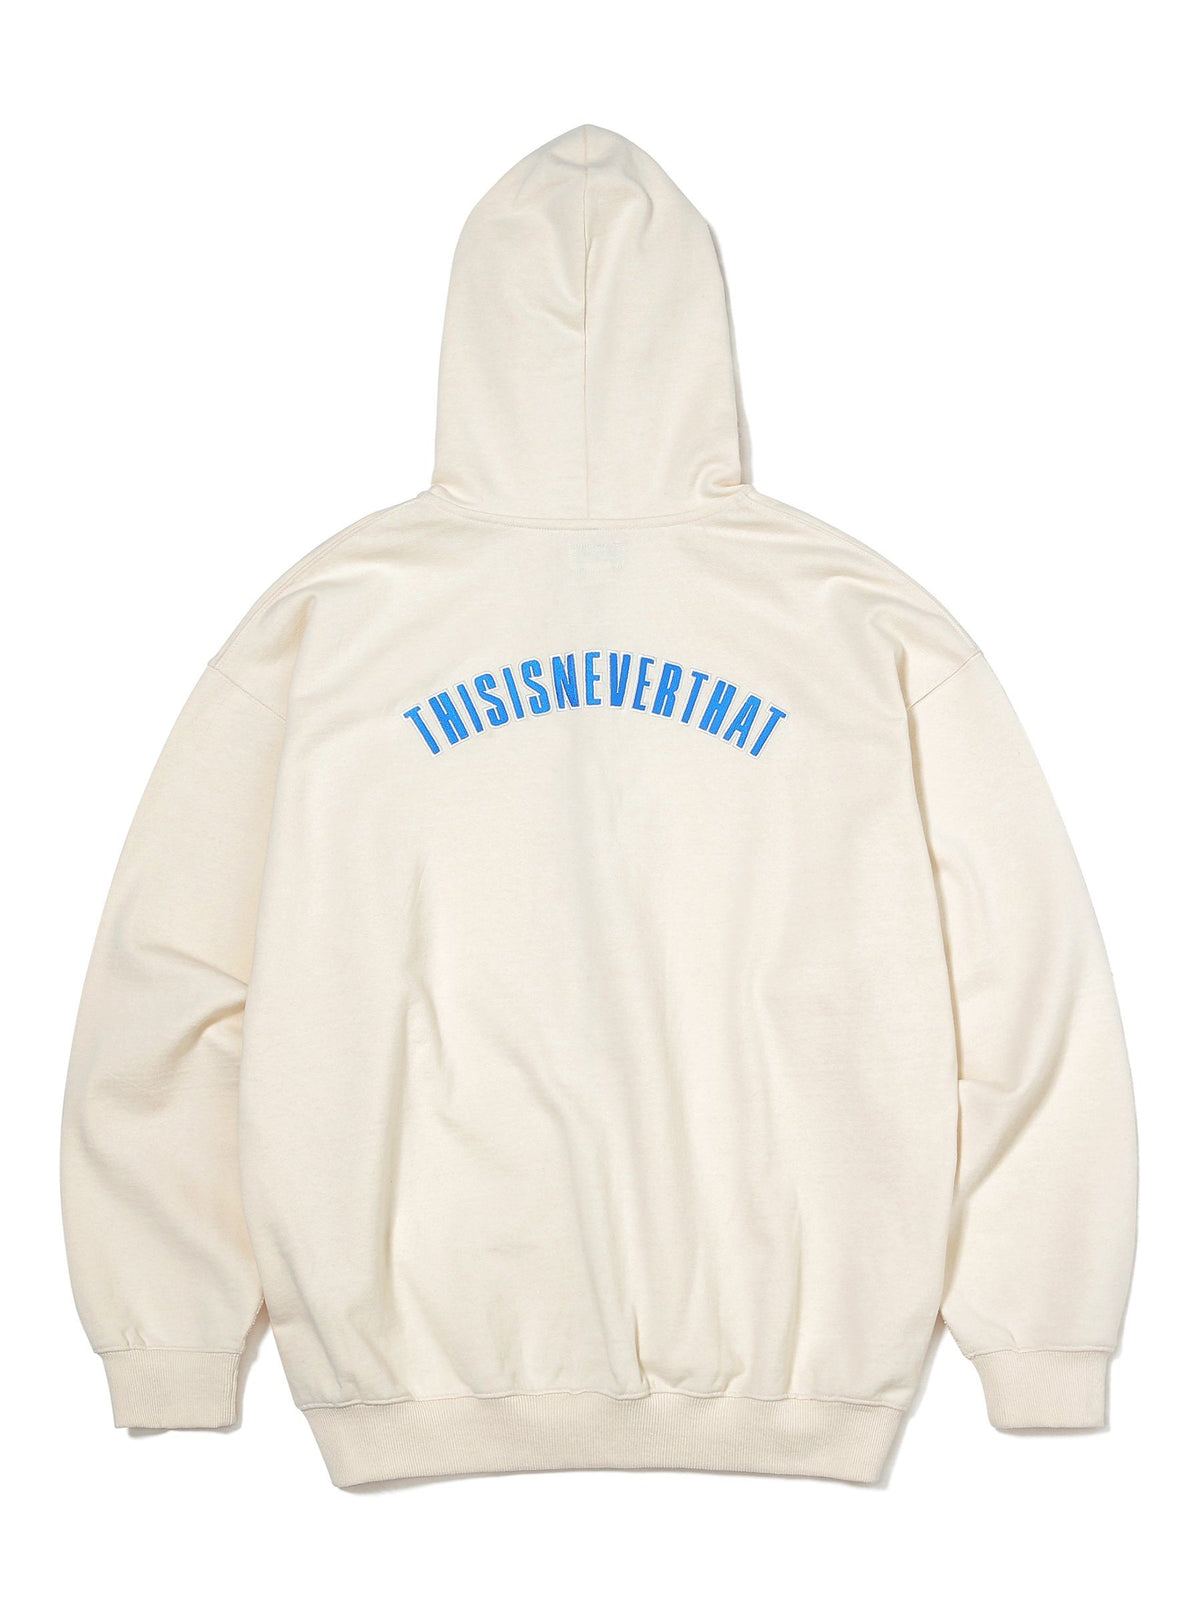 NEW ARC ZIPUP Sweat - thisisneverthat